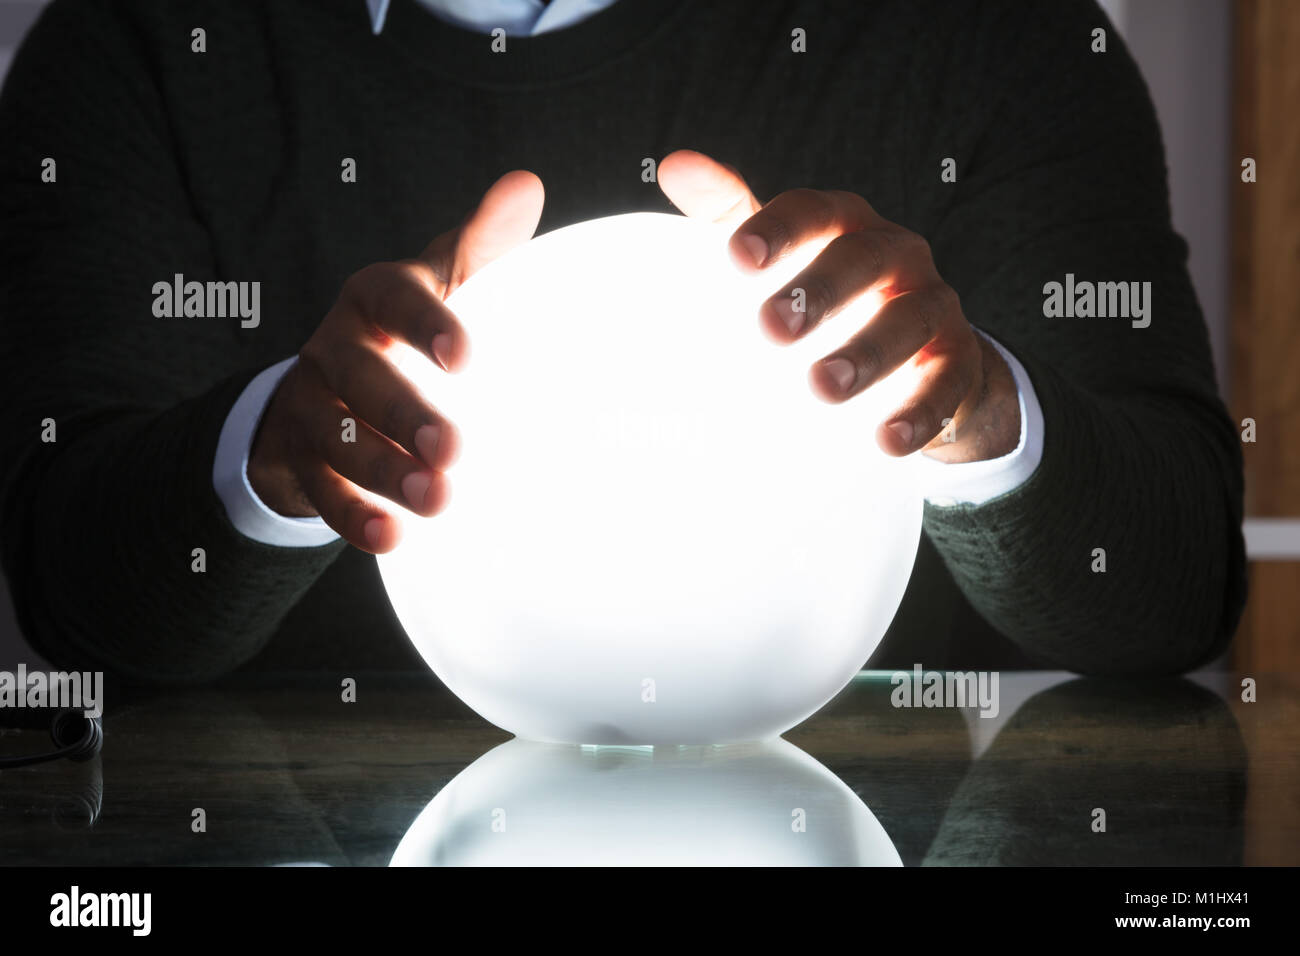 Fortune Teller Crystal Ball Hands Stock Photos & Fortune